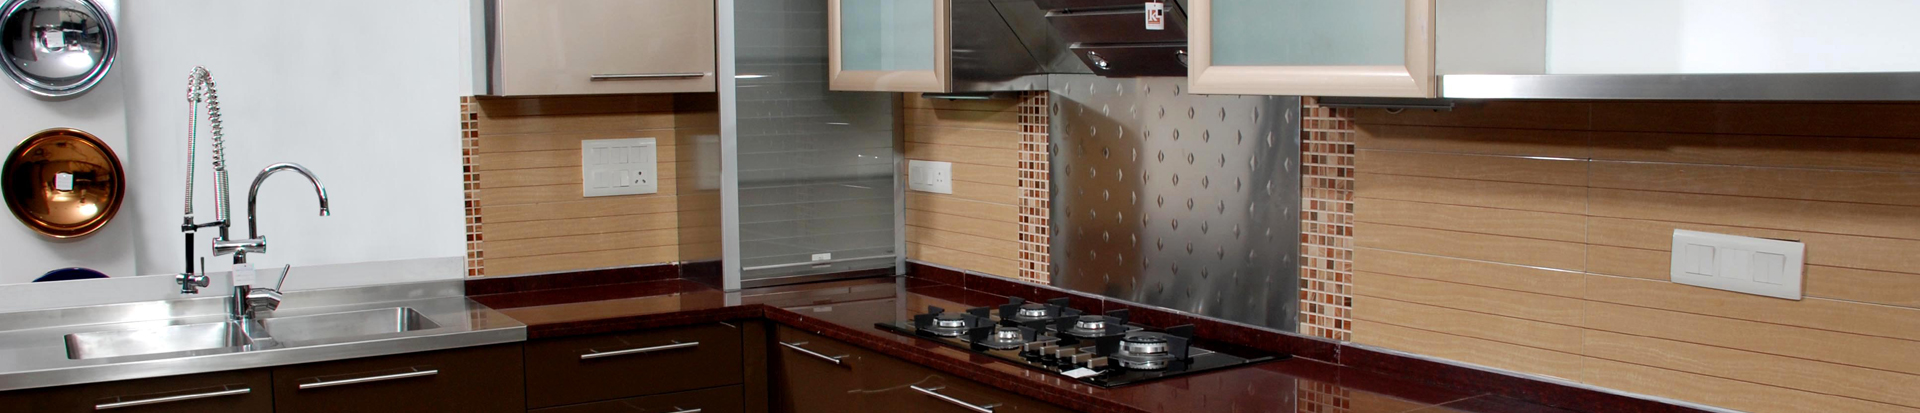 Rudra Home Modular Kitchens Franchise In India Amritsar Punjab Mumbai Pune Delhi Modular